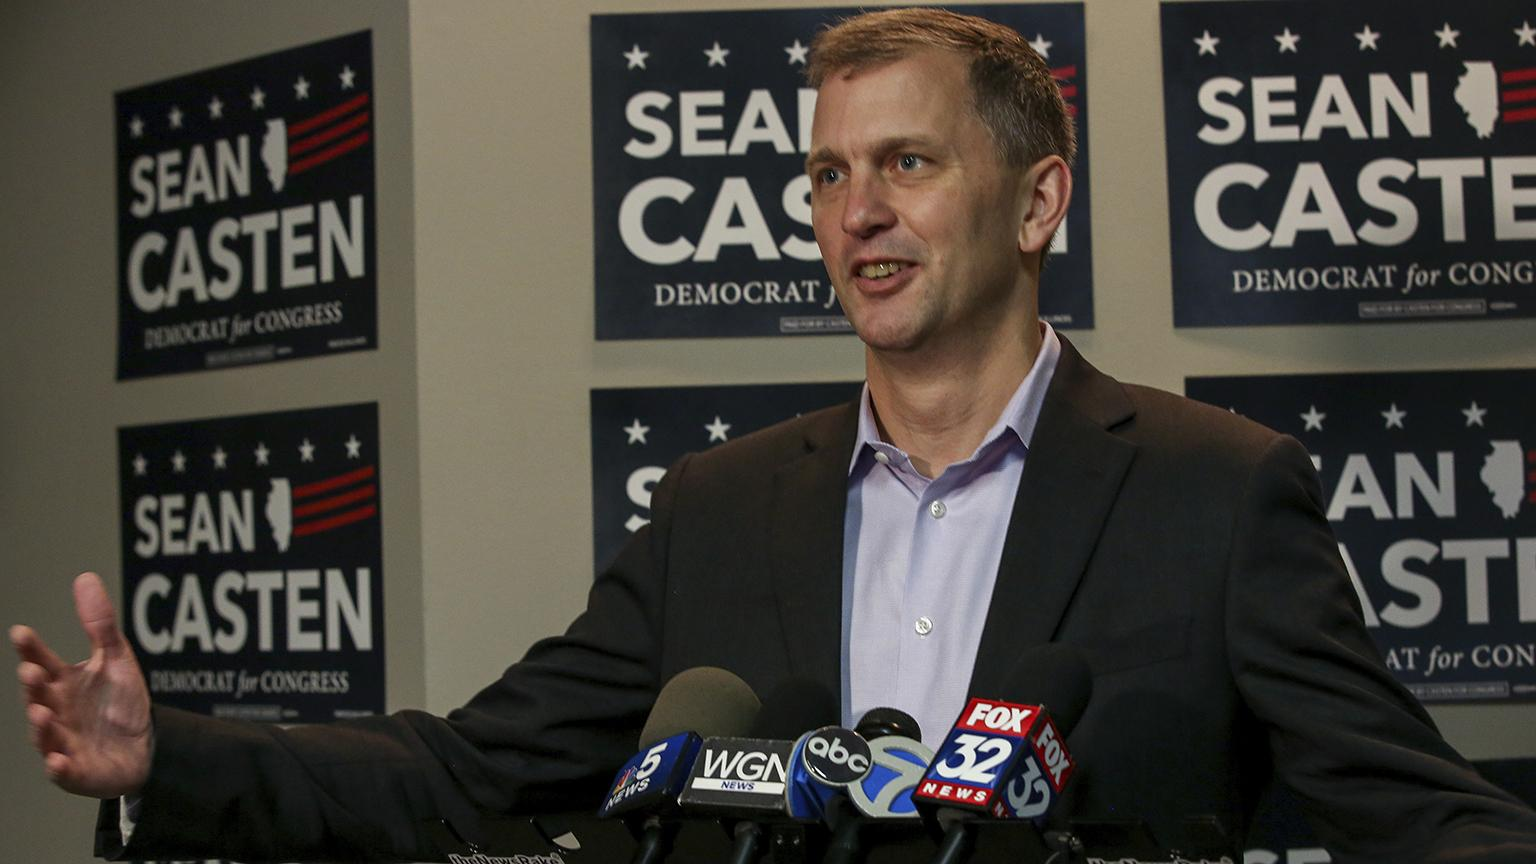 Sean Casten takes questions at a press conference Wednesday, Nov. 7, 2018 about his win in the election. (Bev Horne / Daily Herald via AP)